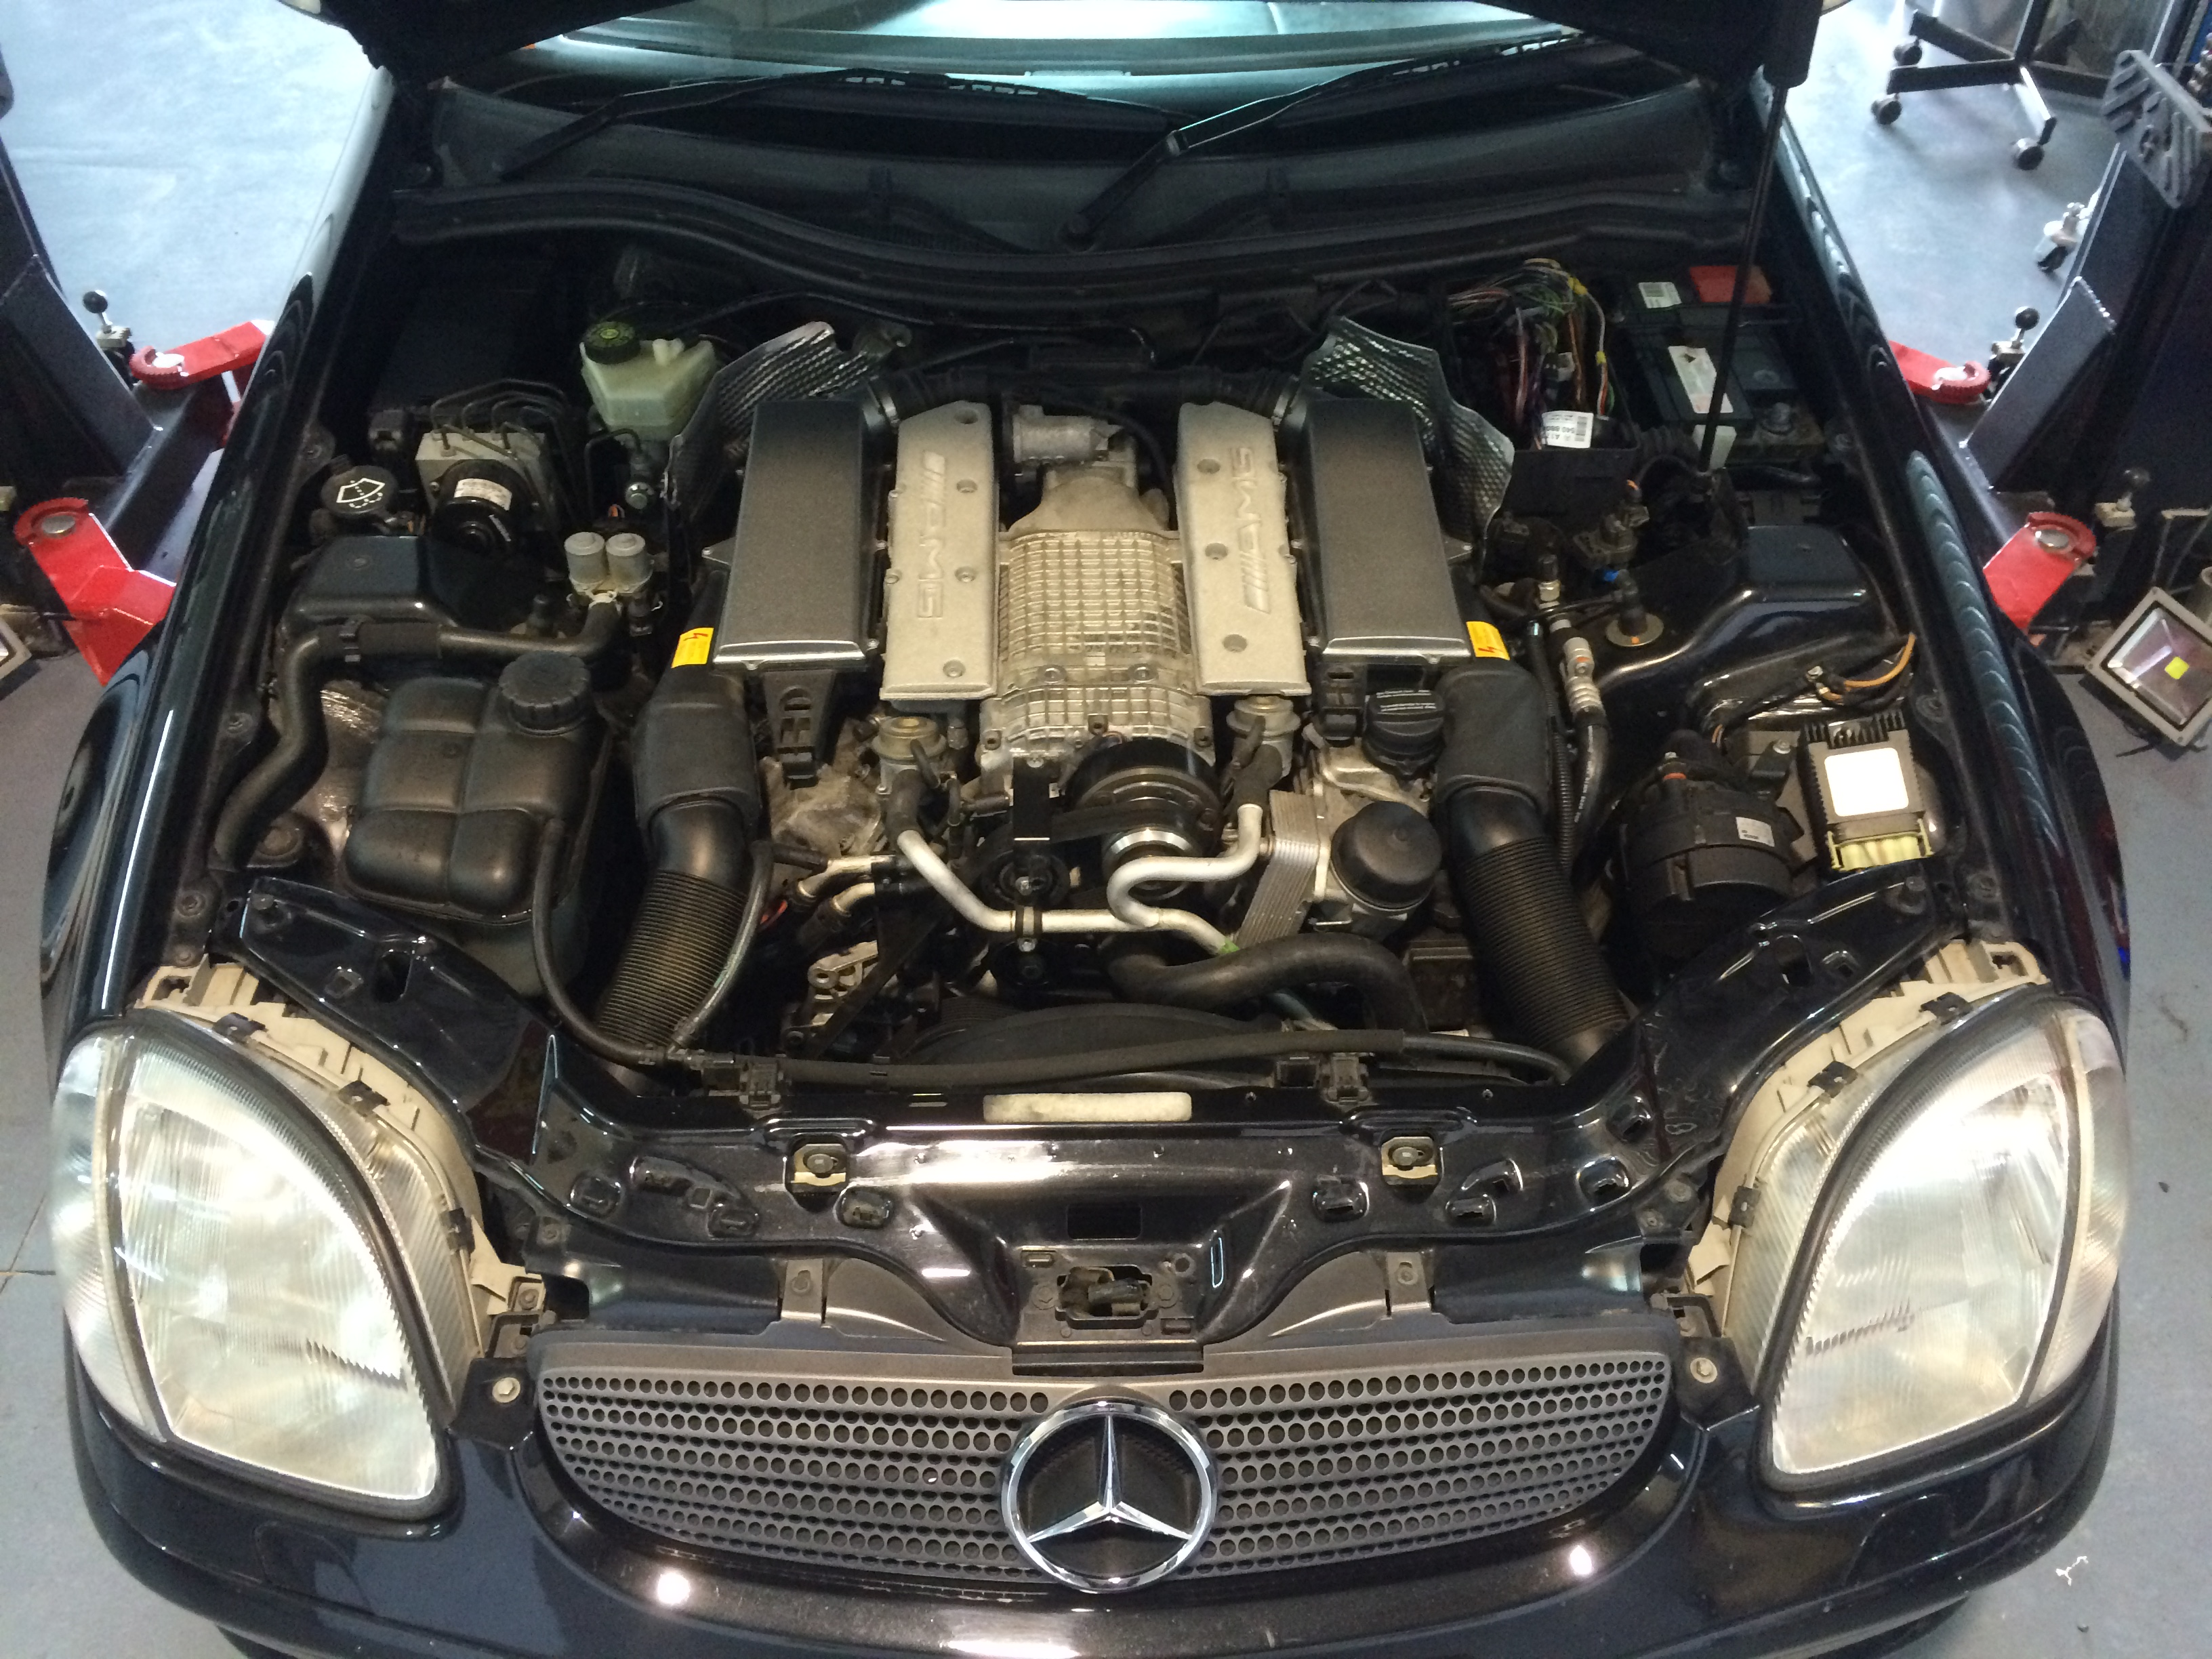 Mercedes-Benz SLK32 AMG ECU tuning & Performance Upgrade by